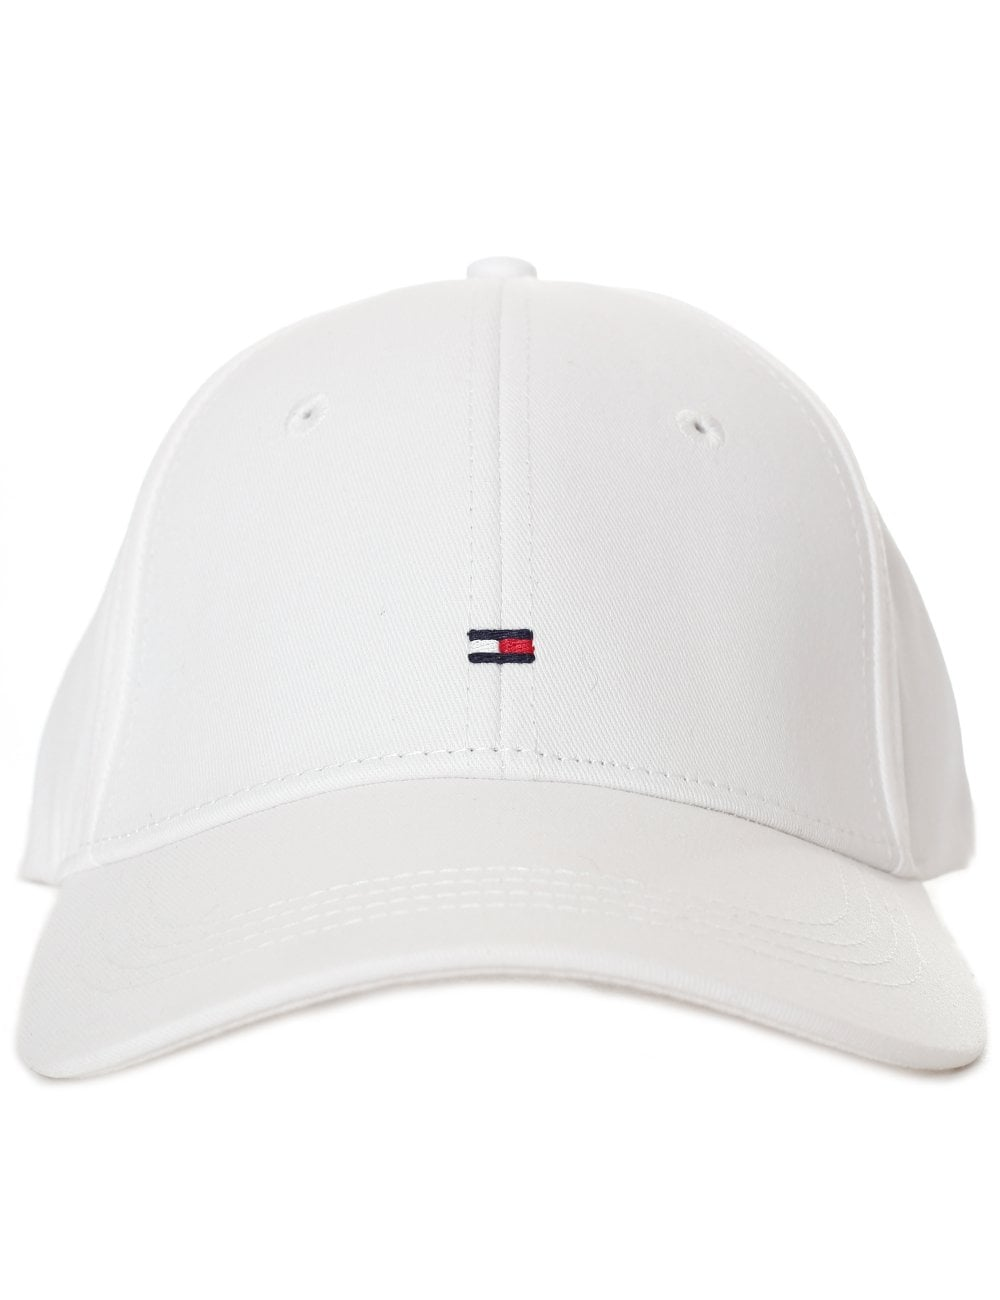 Tommy Hilfiger Women s Classic Baseball Cap Bright White 7a99af22b3f